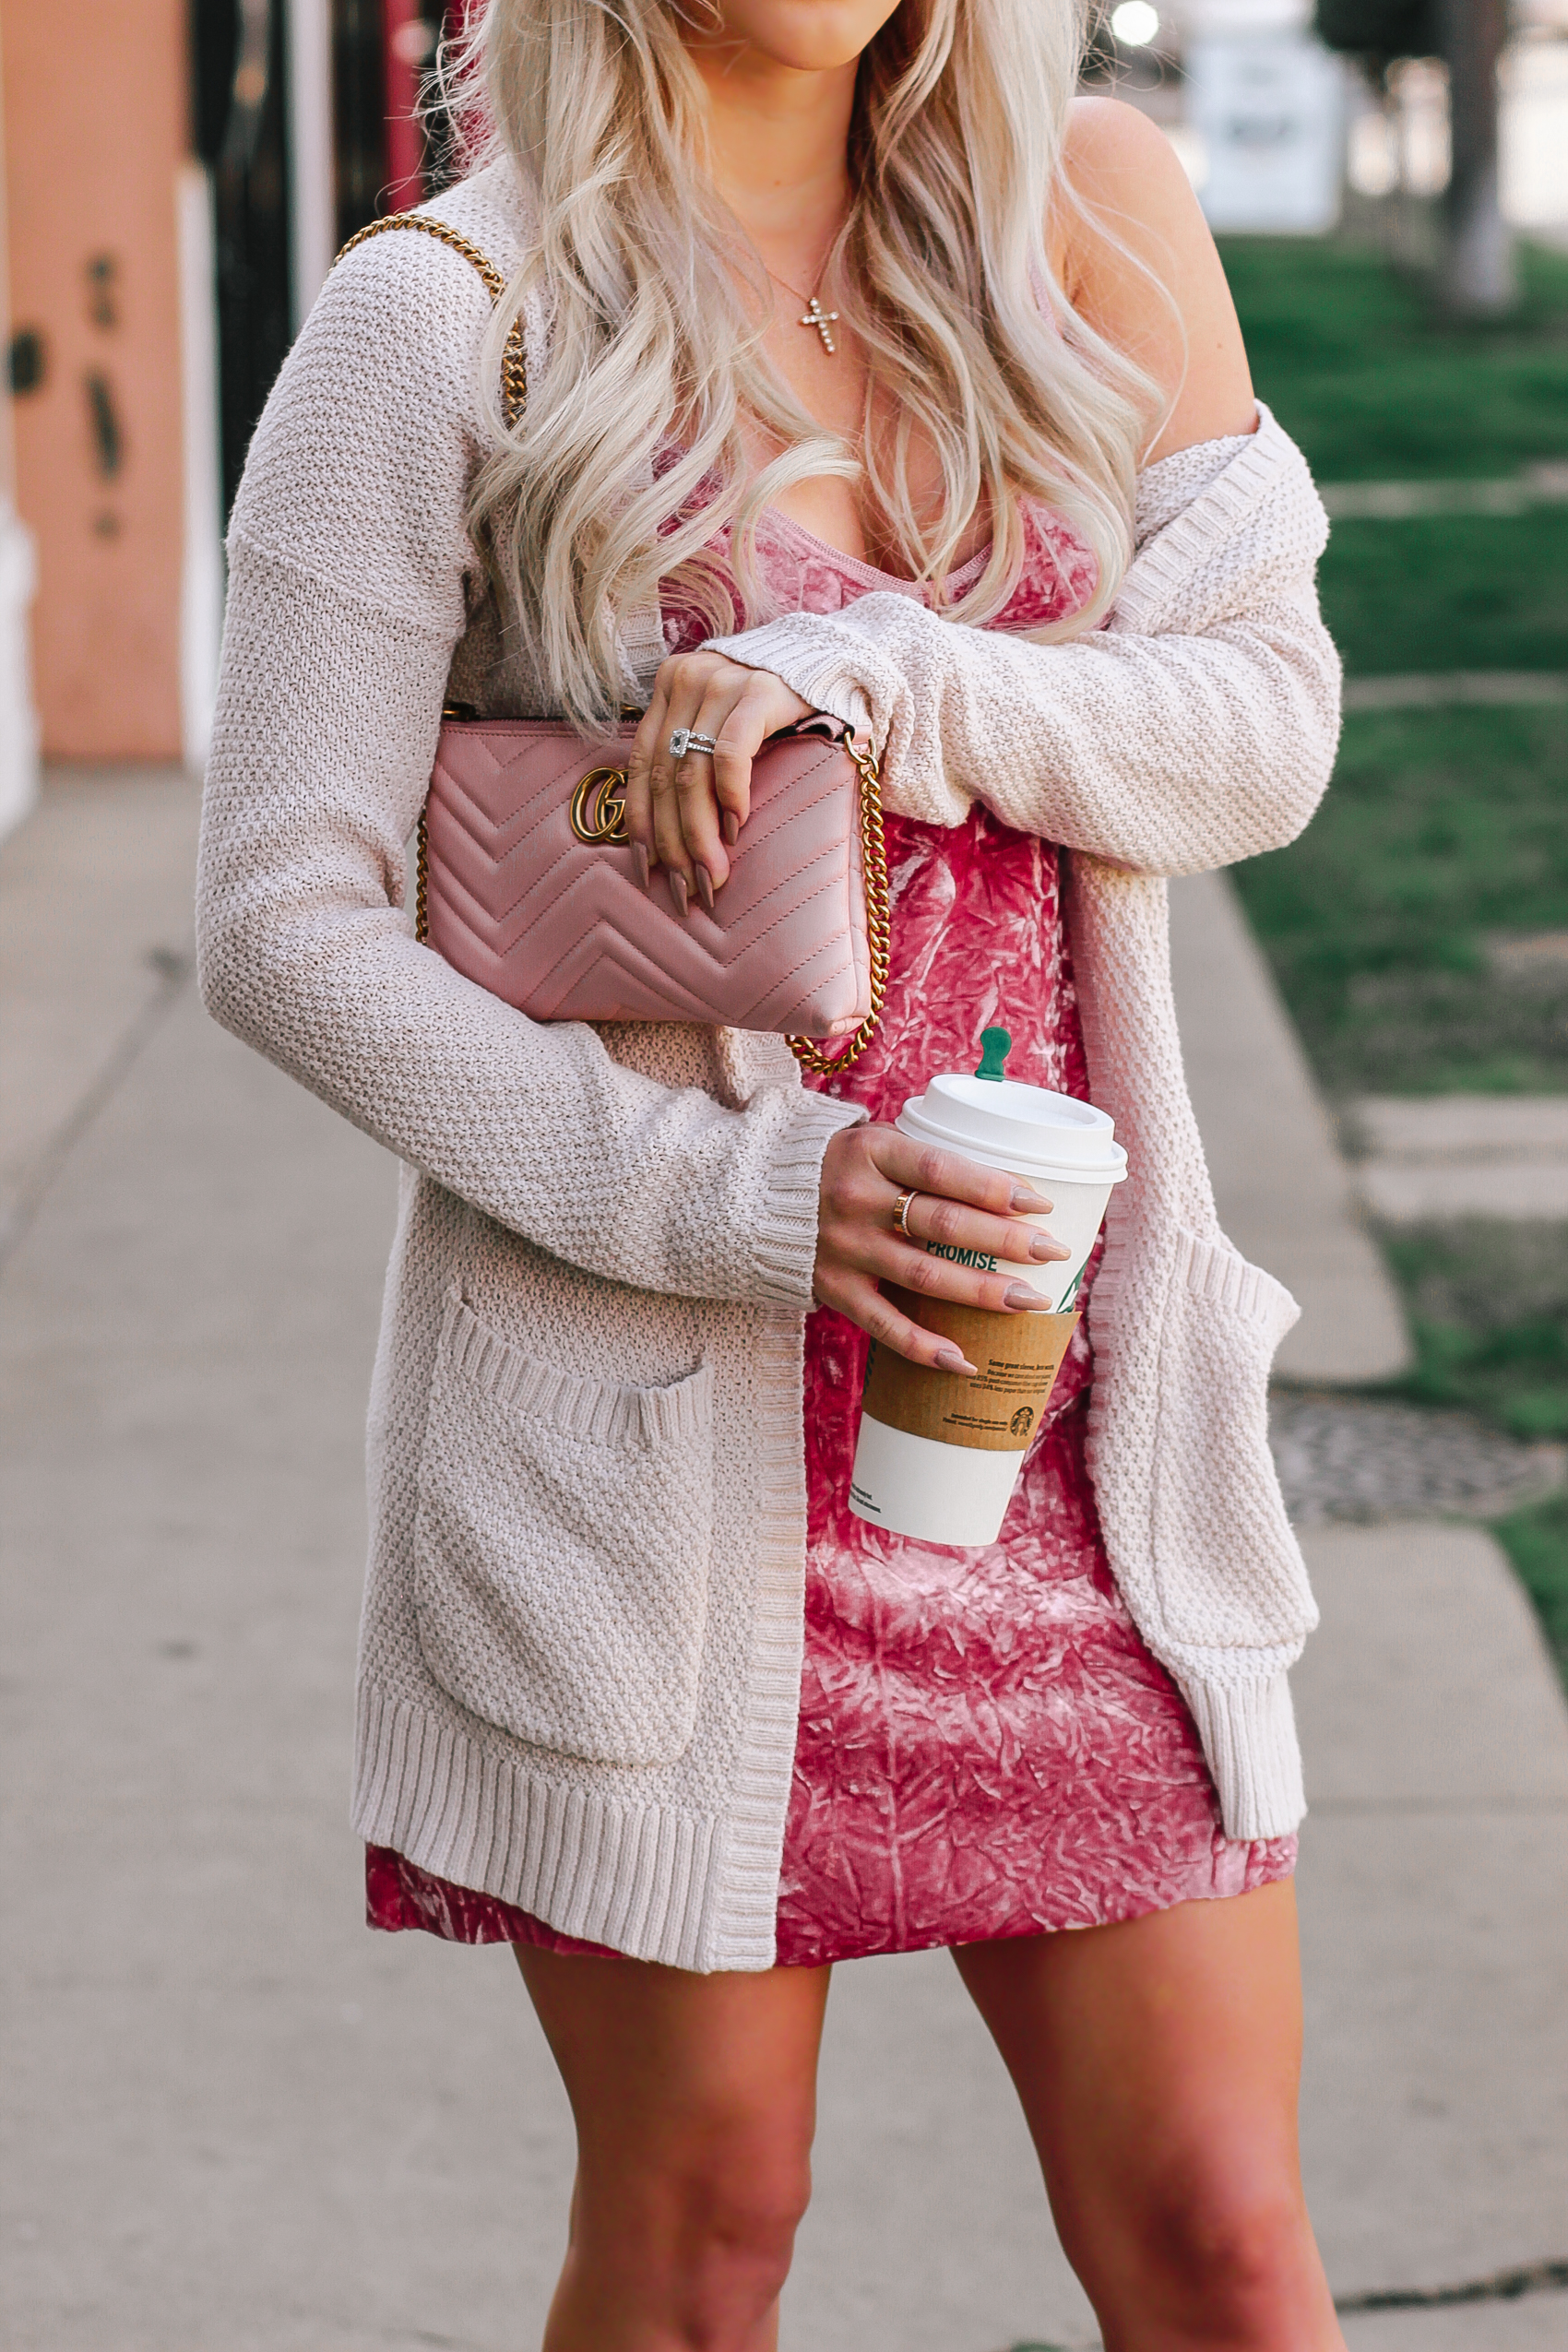 Pink Crushed Velvet Dress, Blush Pink Gucci Crossbody, Pink Louboutins | Valentine's Day inspired Outfit | Blondie in the City by Hayley Larue